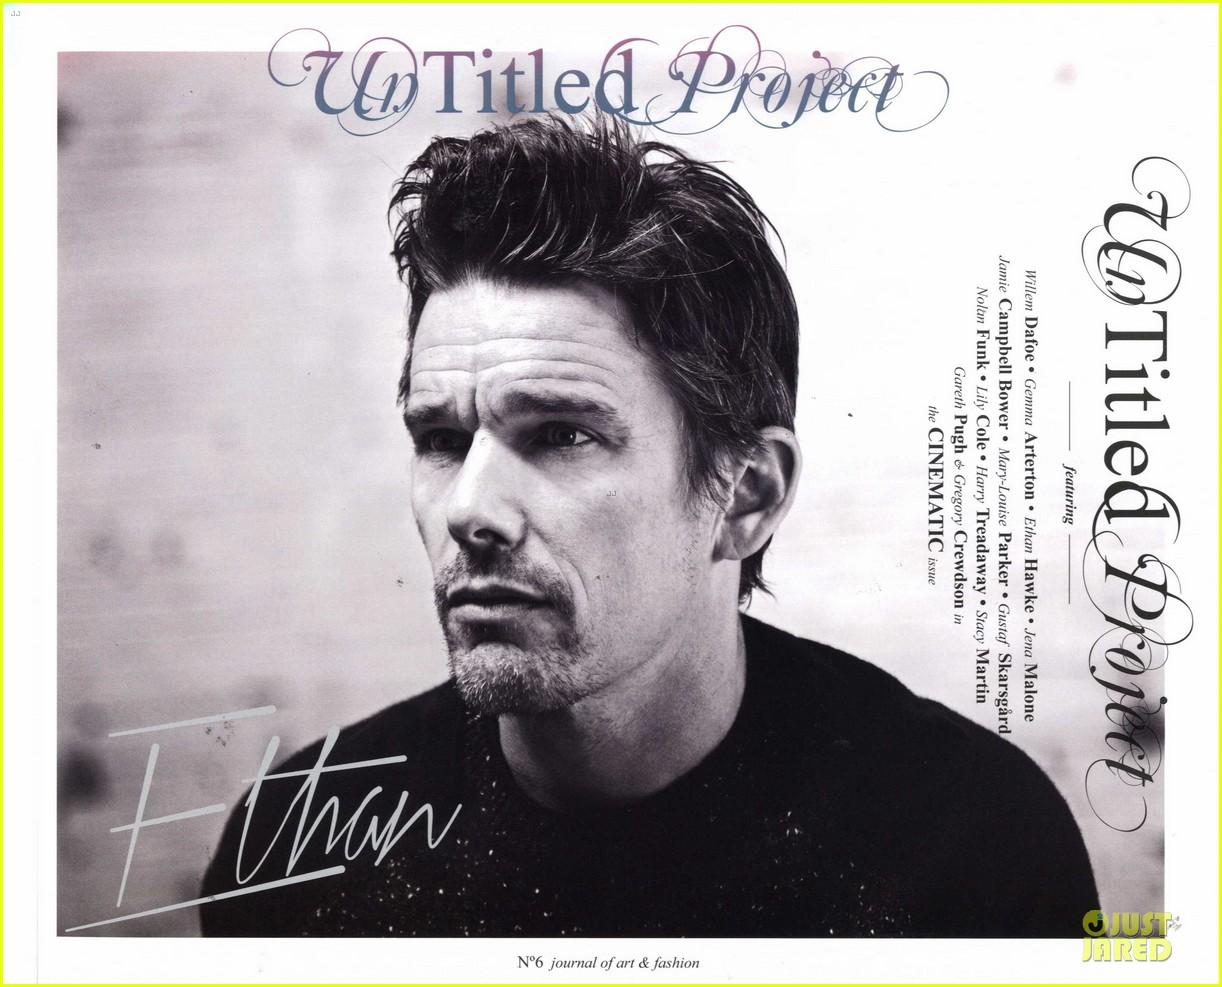 ethan hawke covers untitled project magazine 11